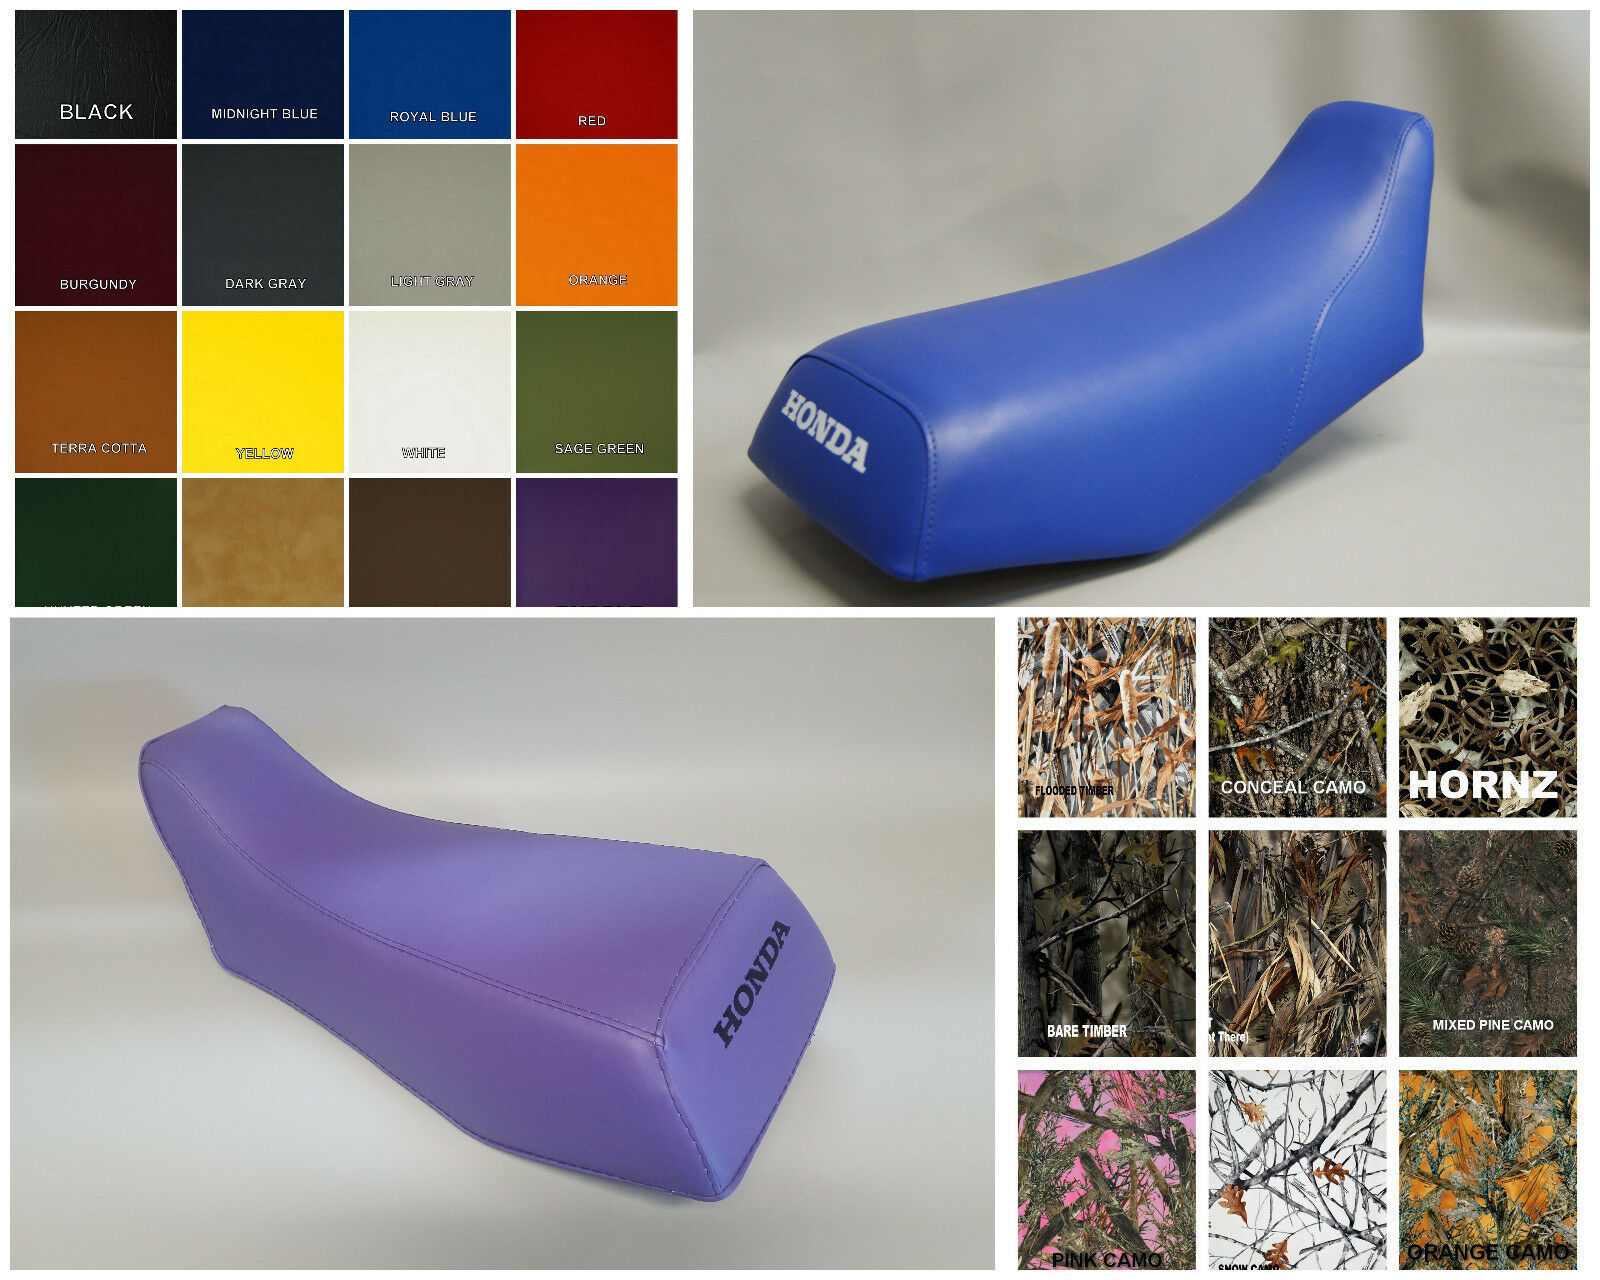 Primary image for HONDA TRX70 Seat Cover in default solid BLACK, 25 COLORS,& 2-TONE Options (ST)